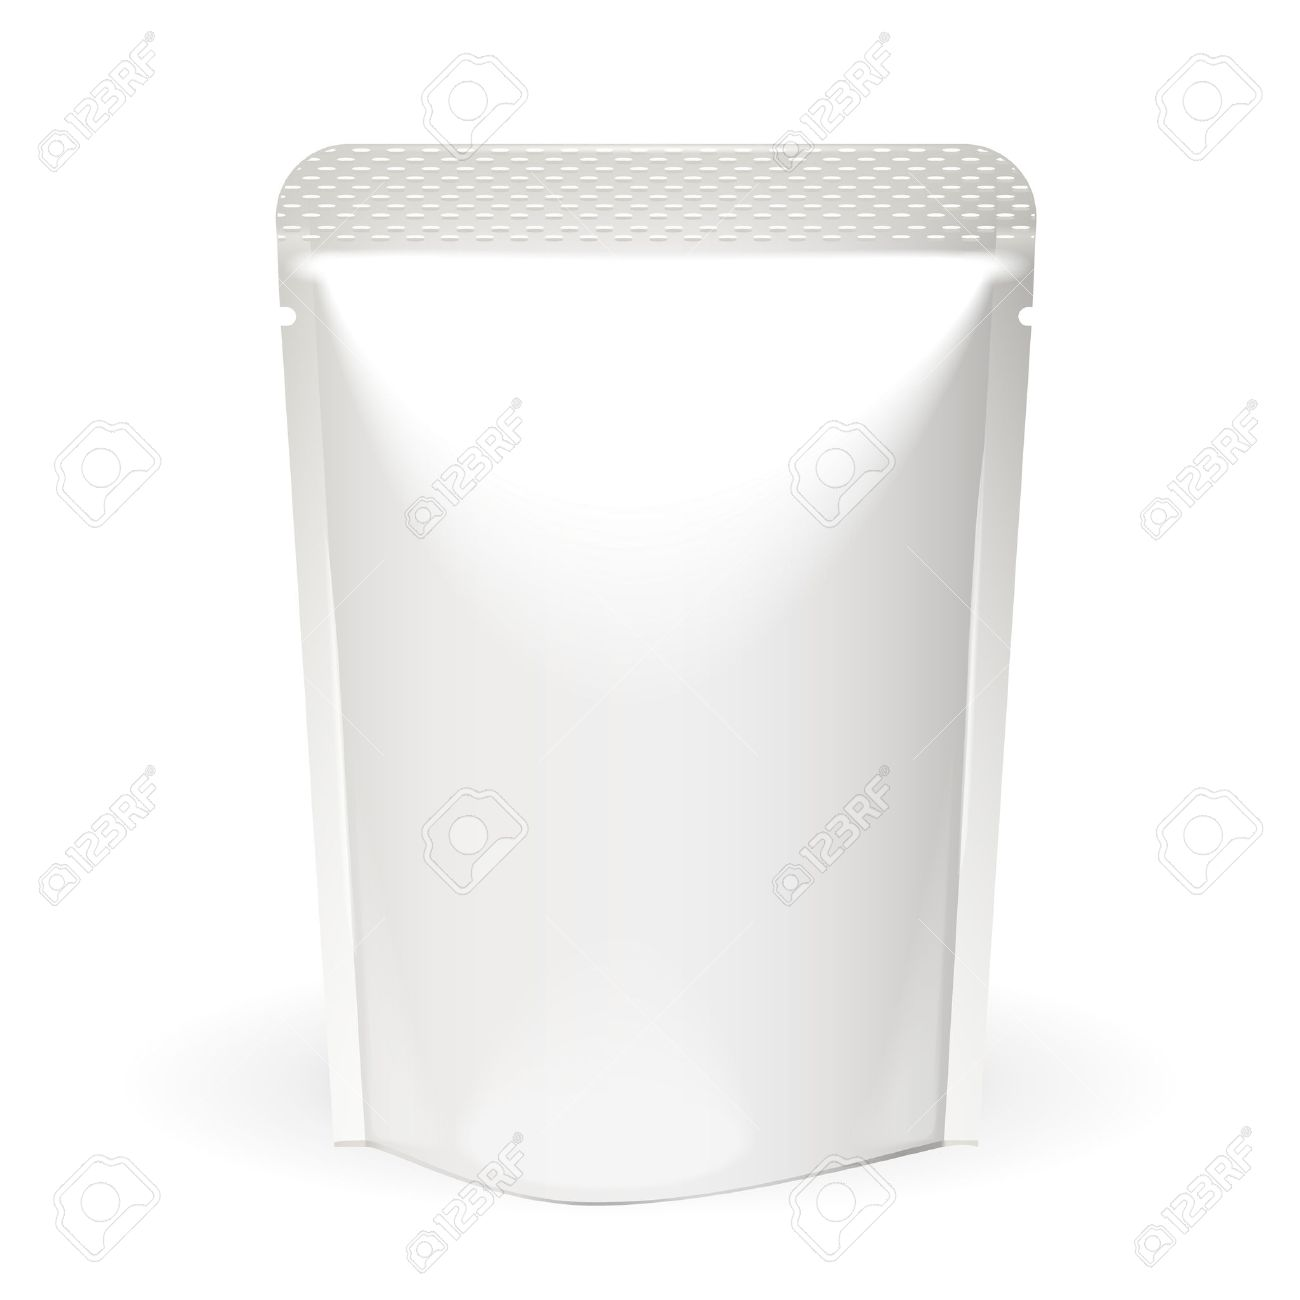 White Mock Up Blank Foil Food Or Drink Doypack Bag Packaging. Plastic Pack Template Ready For Your Design. Vector EPS10 - 37122598